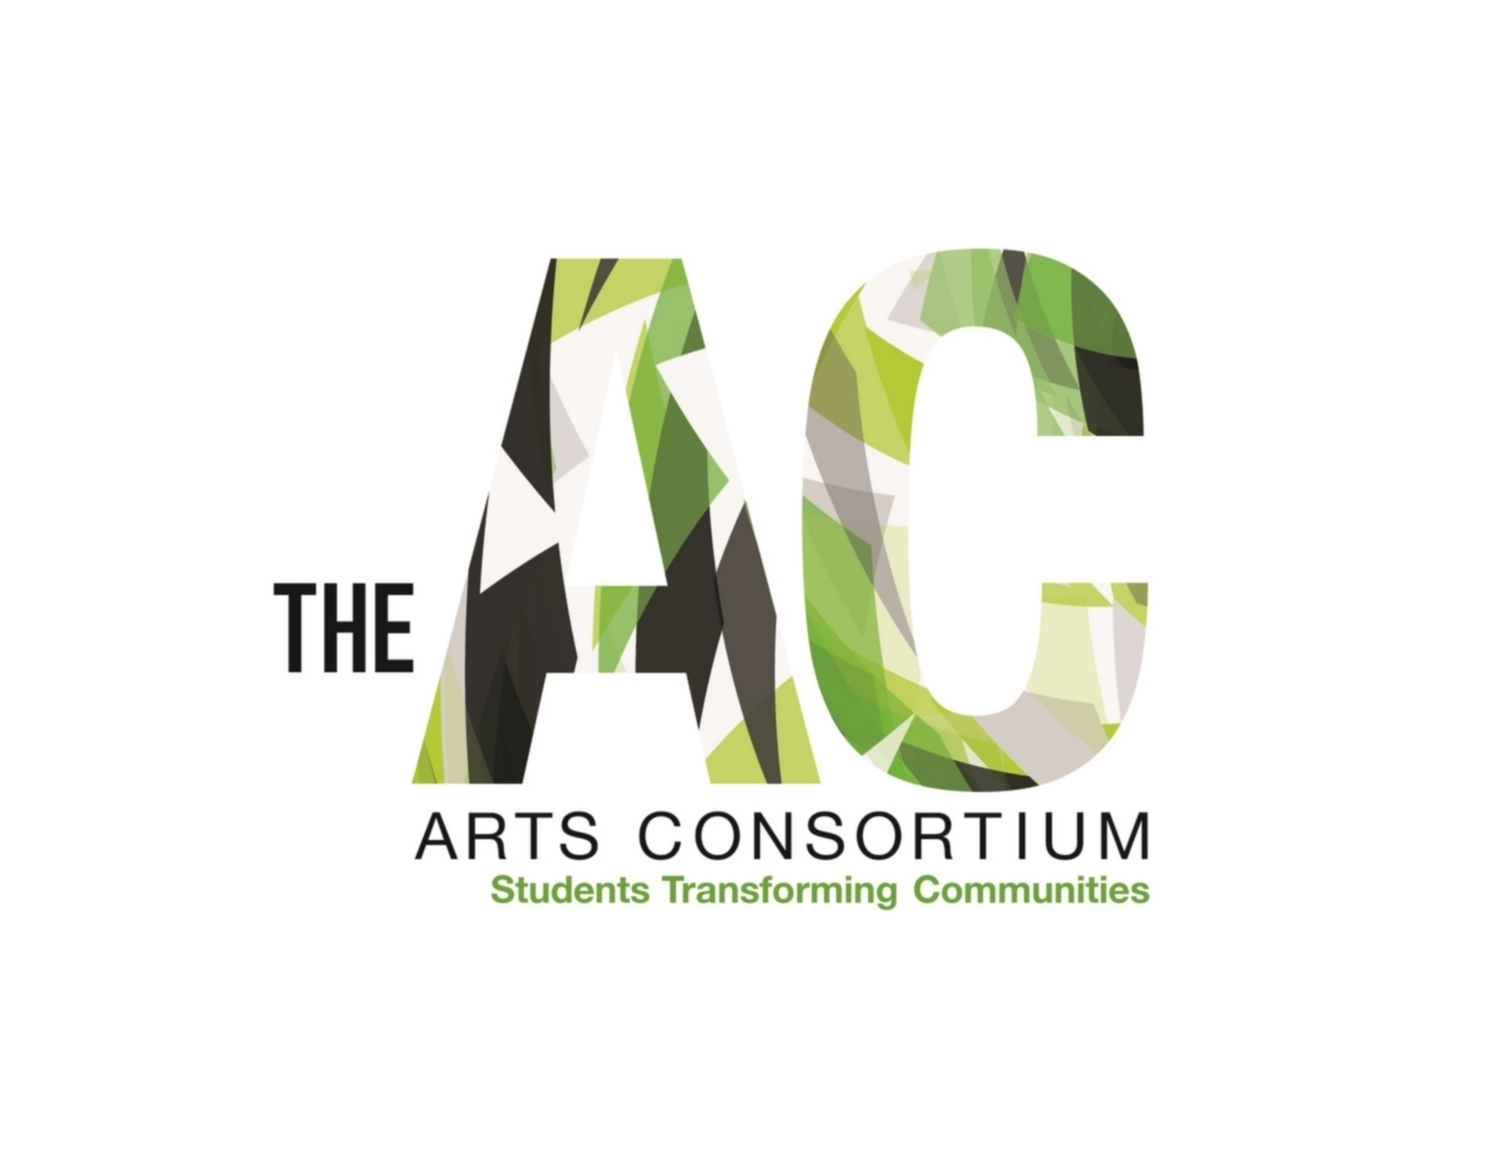 The Arts Consortium